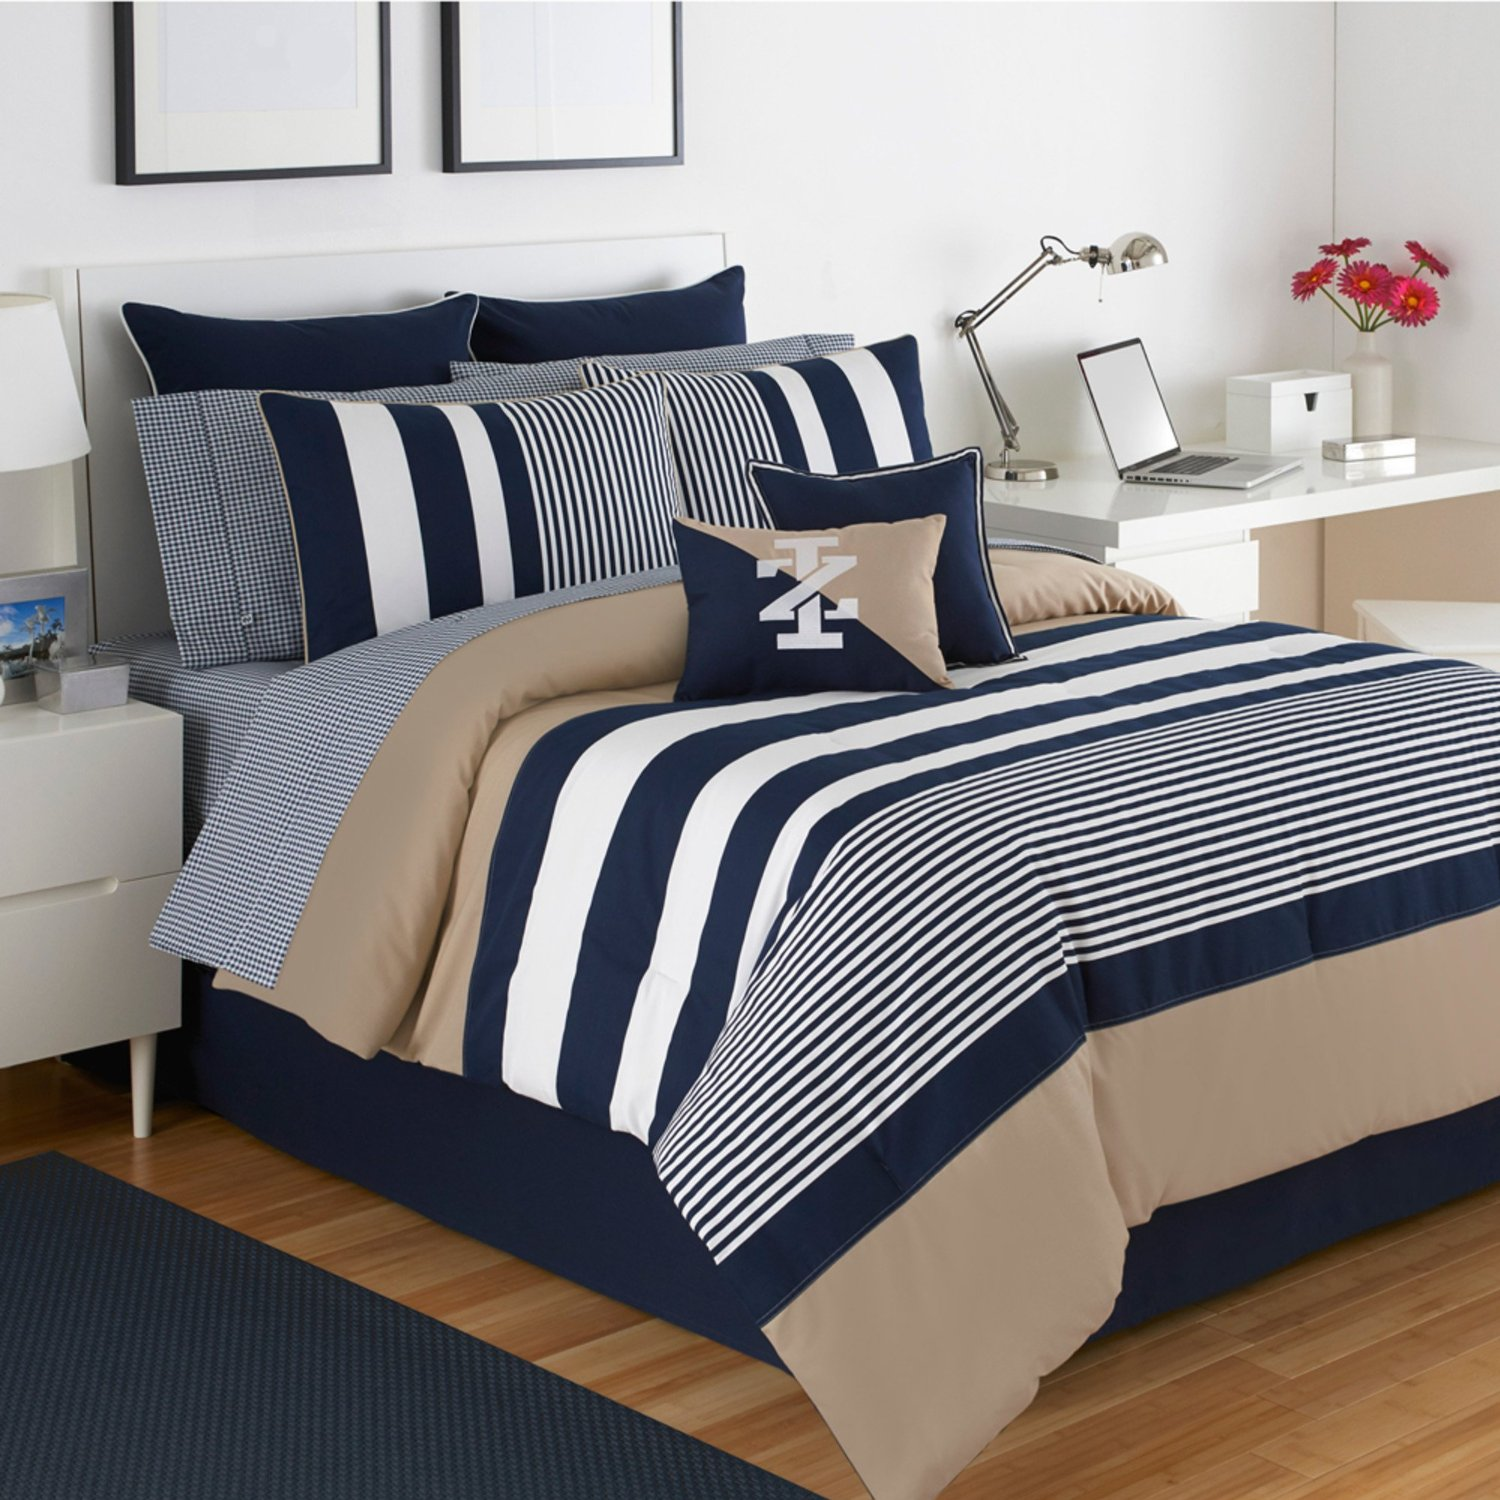 homes day peach and gardens size piece men comforter beach set queen king better sets sheets for bed download